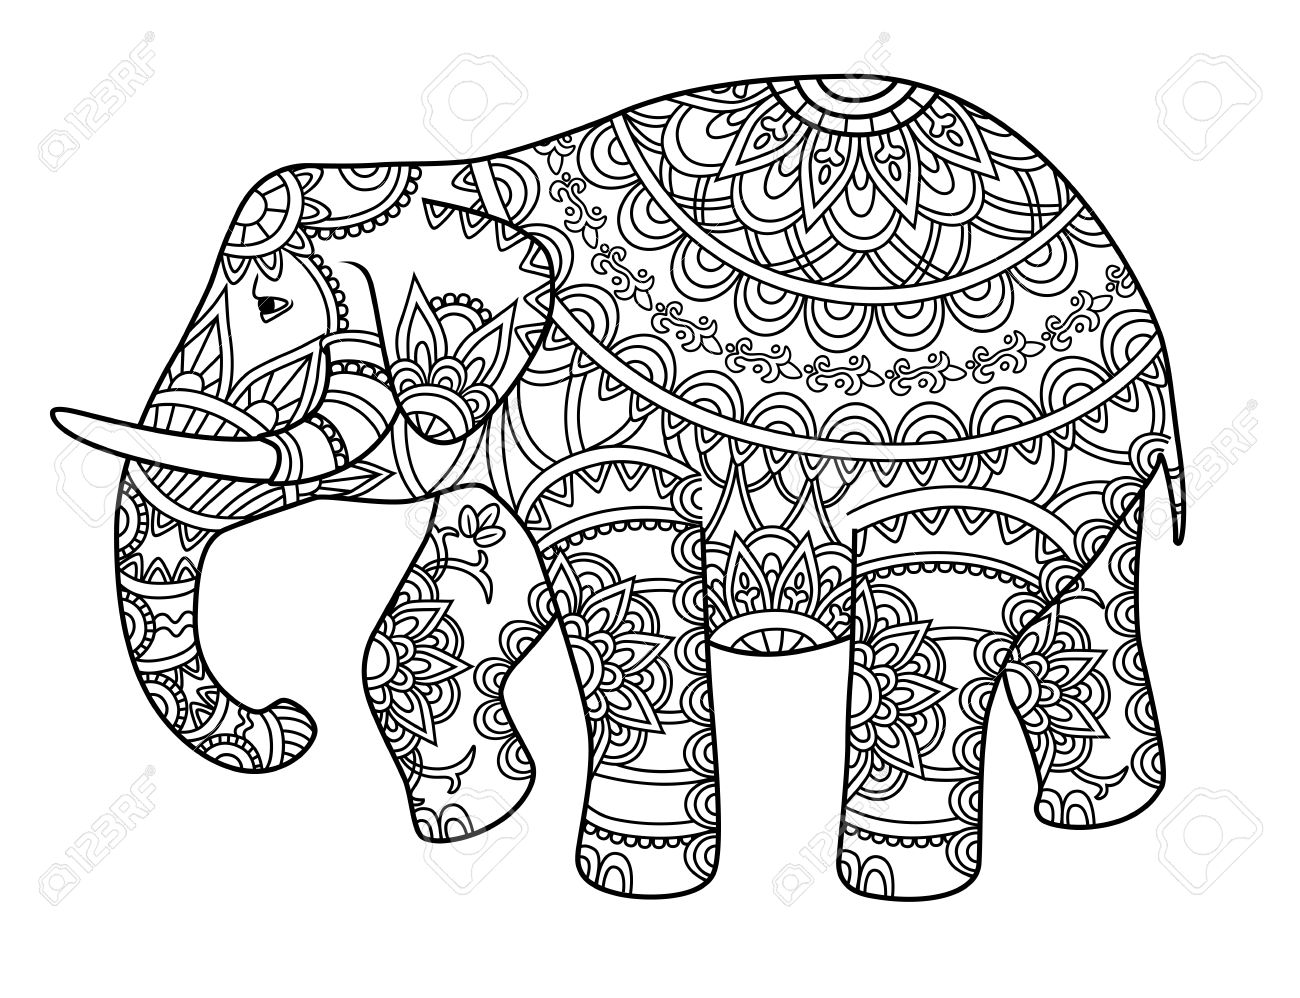 1300x998 Hand Drawn Decorative Outline Elephant With Indian Patterns